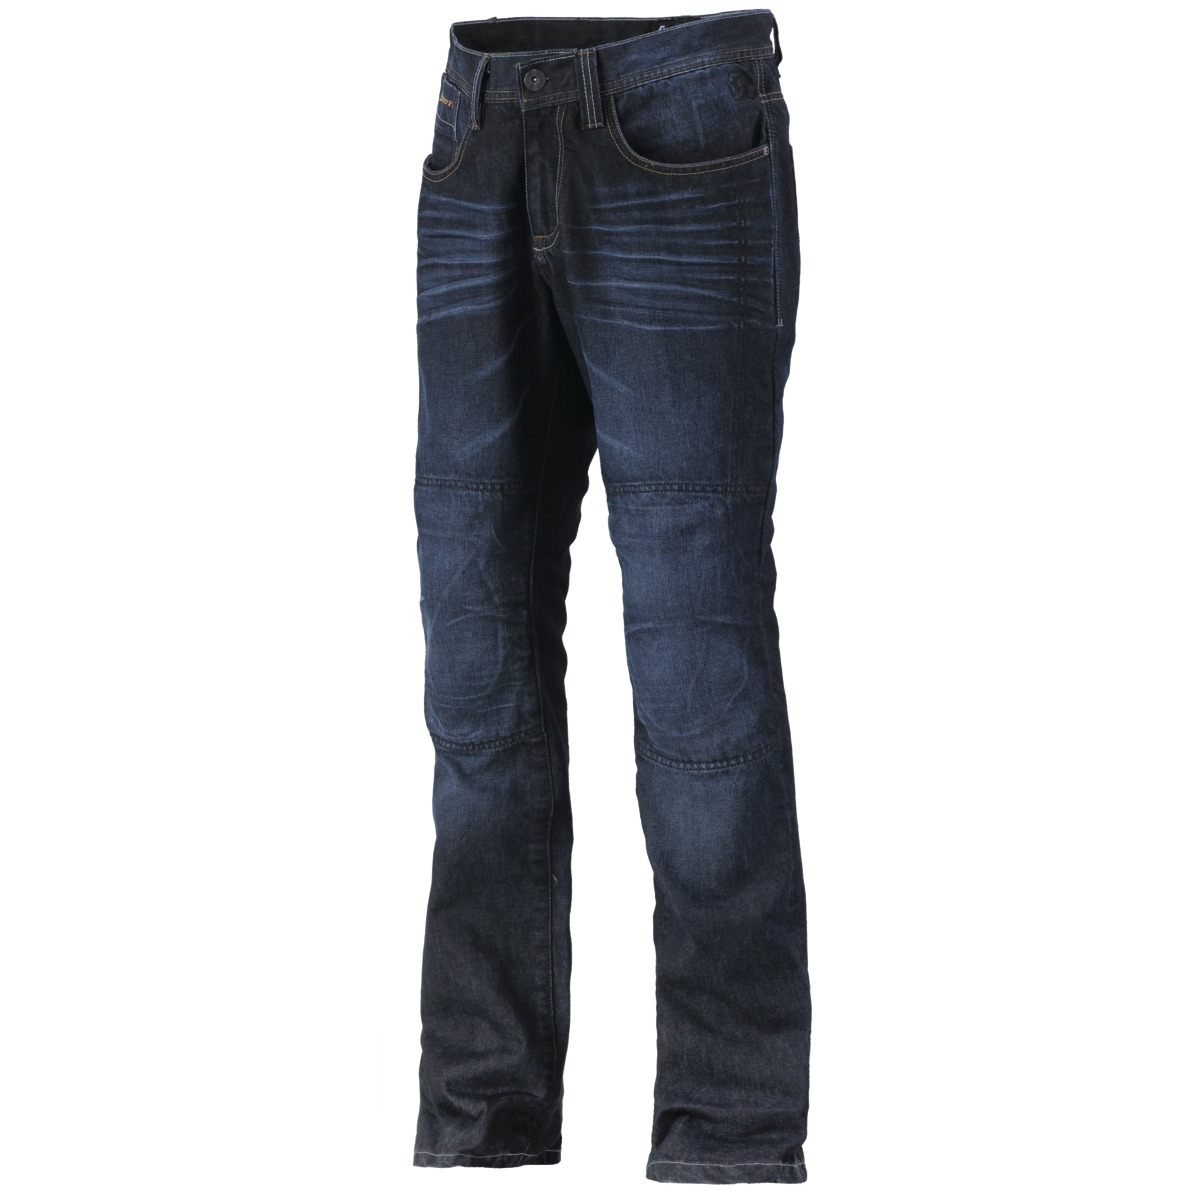 Scott Denim Moto Jeans pantalon Blau 2016